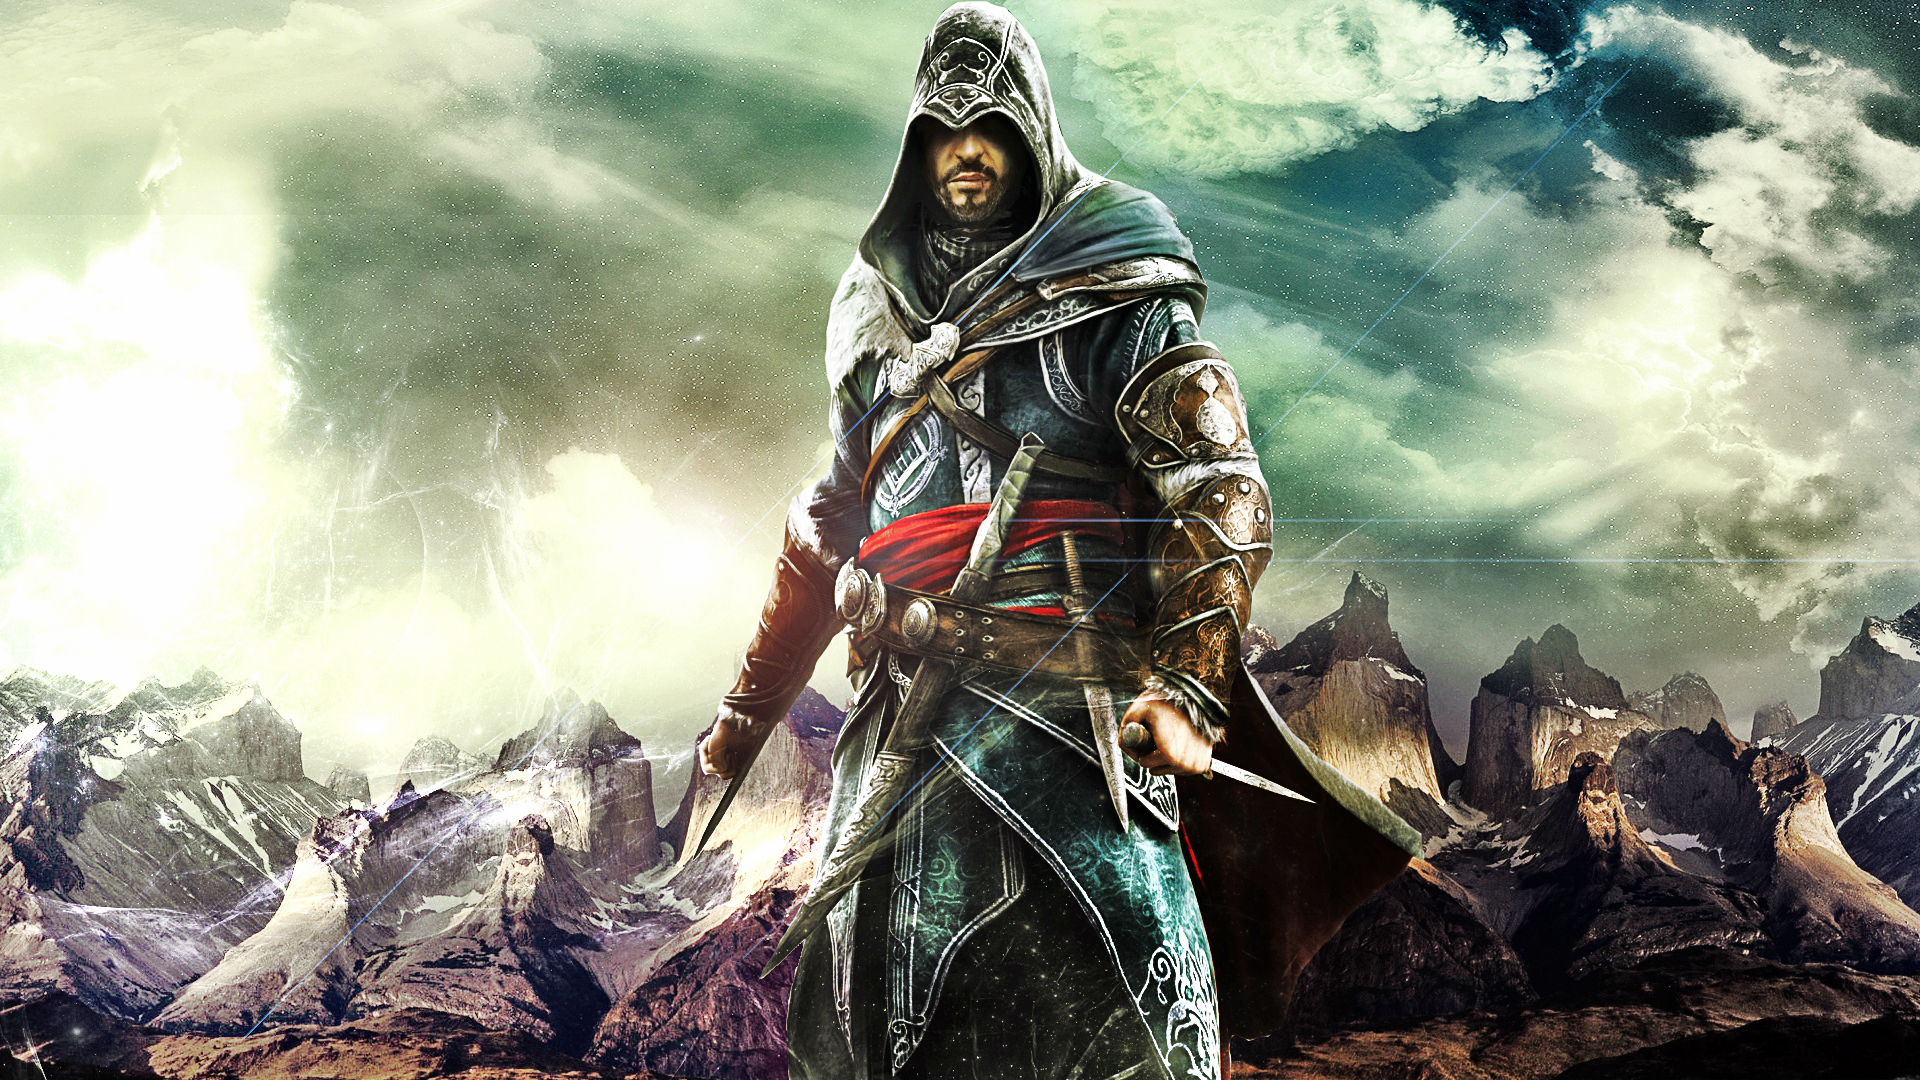 Assassins creed wallpaper 1920x1080